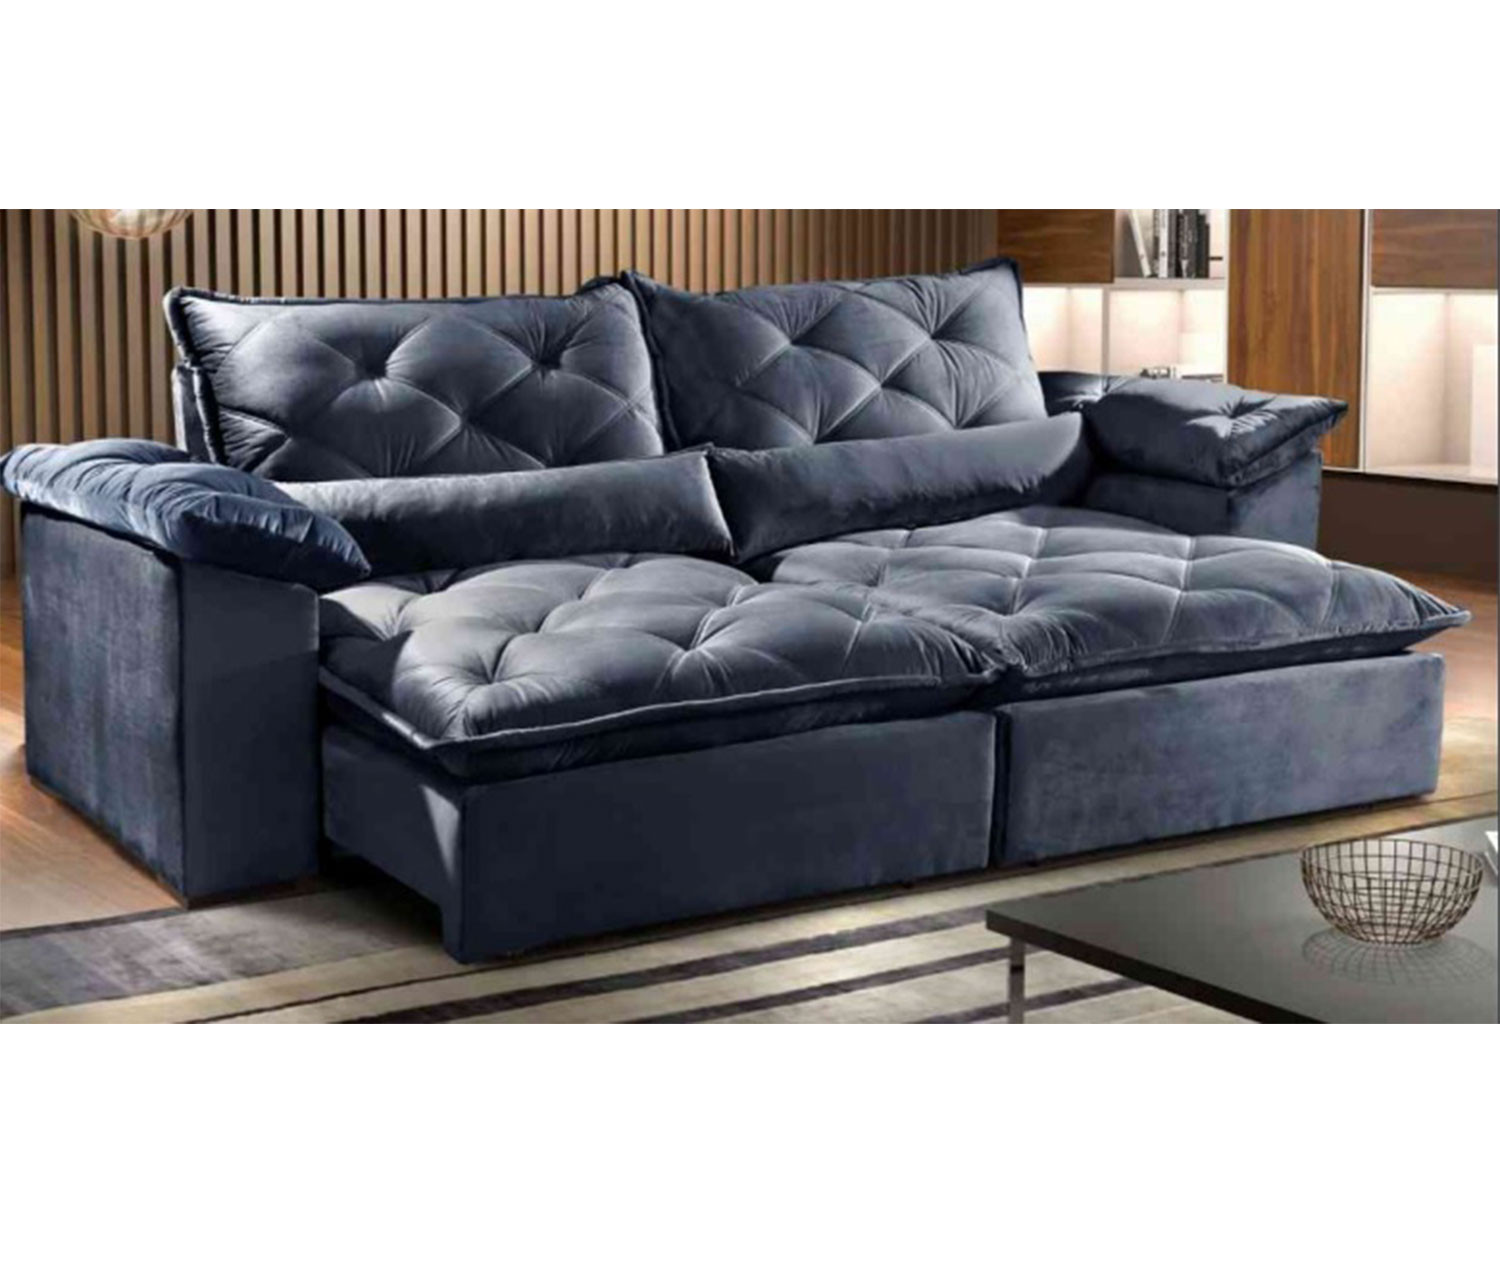 Sofa Retratil Uba Mg Sofa Retratil Reclinavel Athenas 2 10mts Até 2 90mts